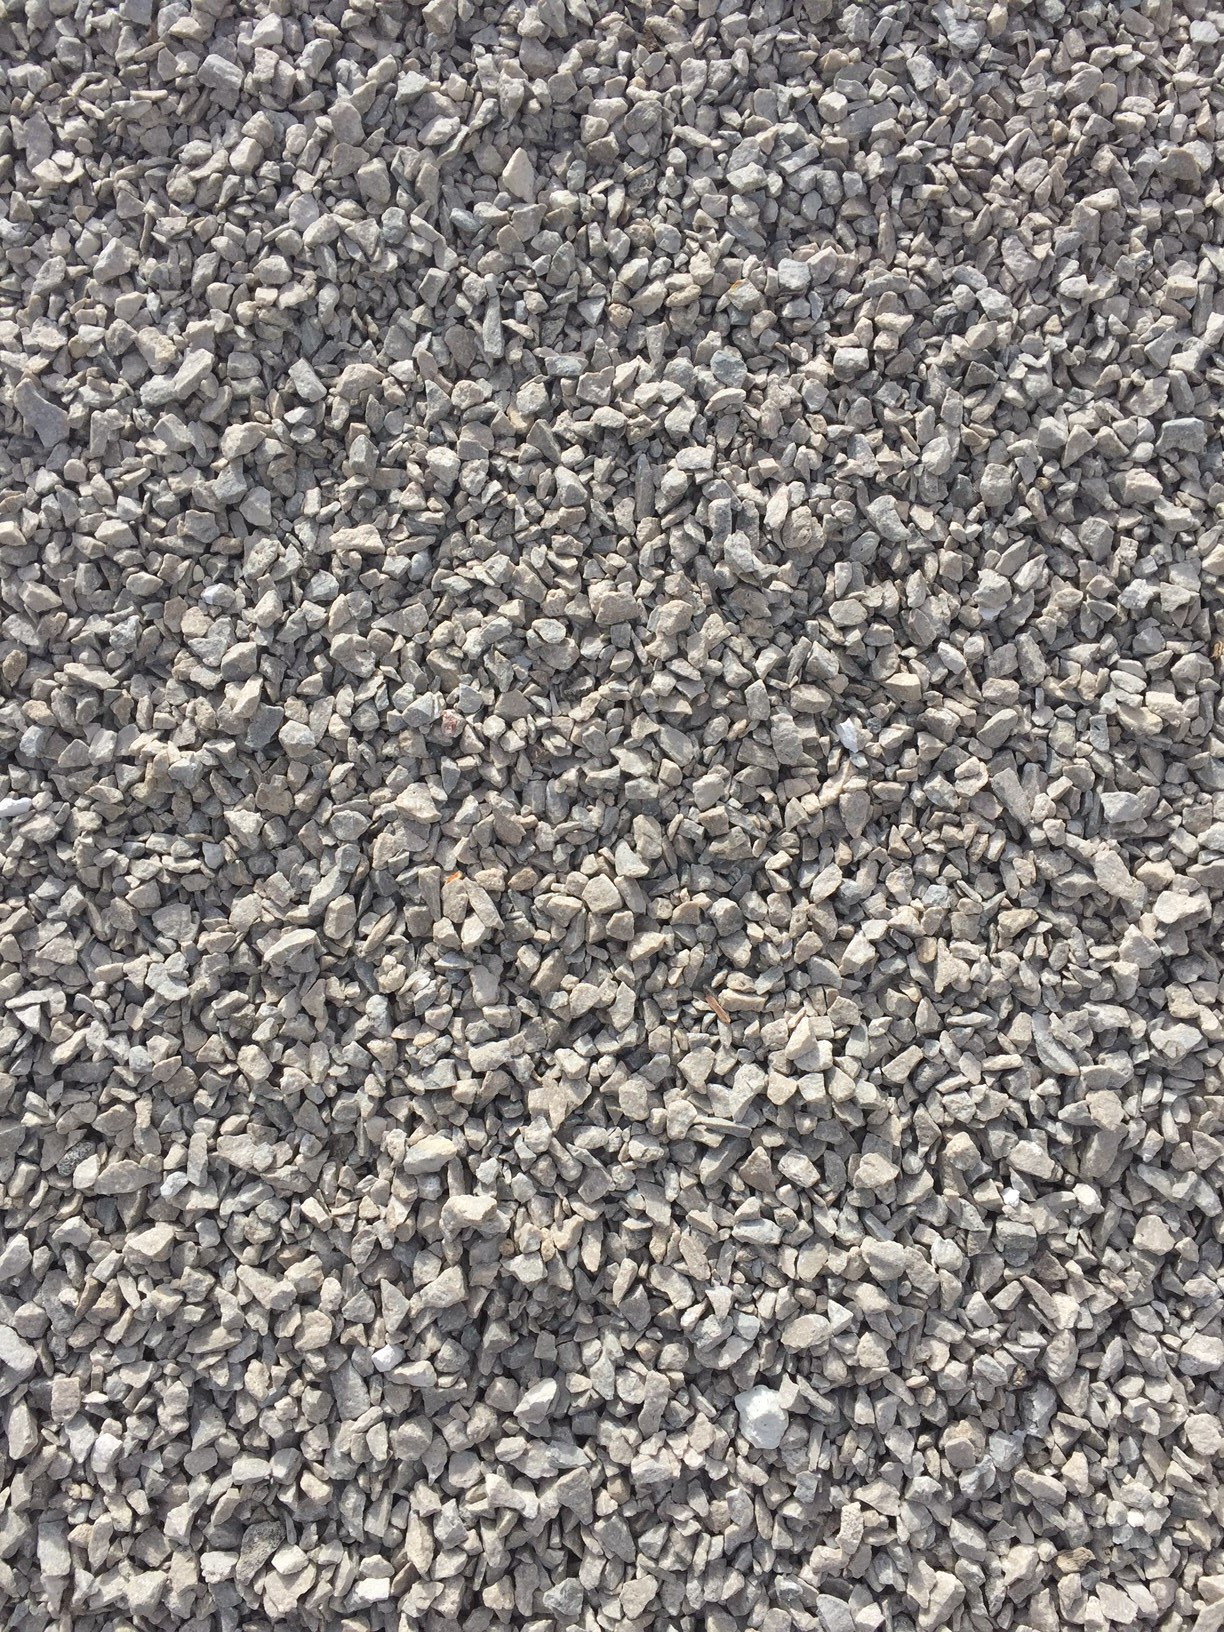 White Crushed Stone : Crushed white rock peoria brick company central